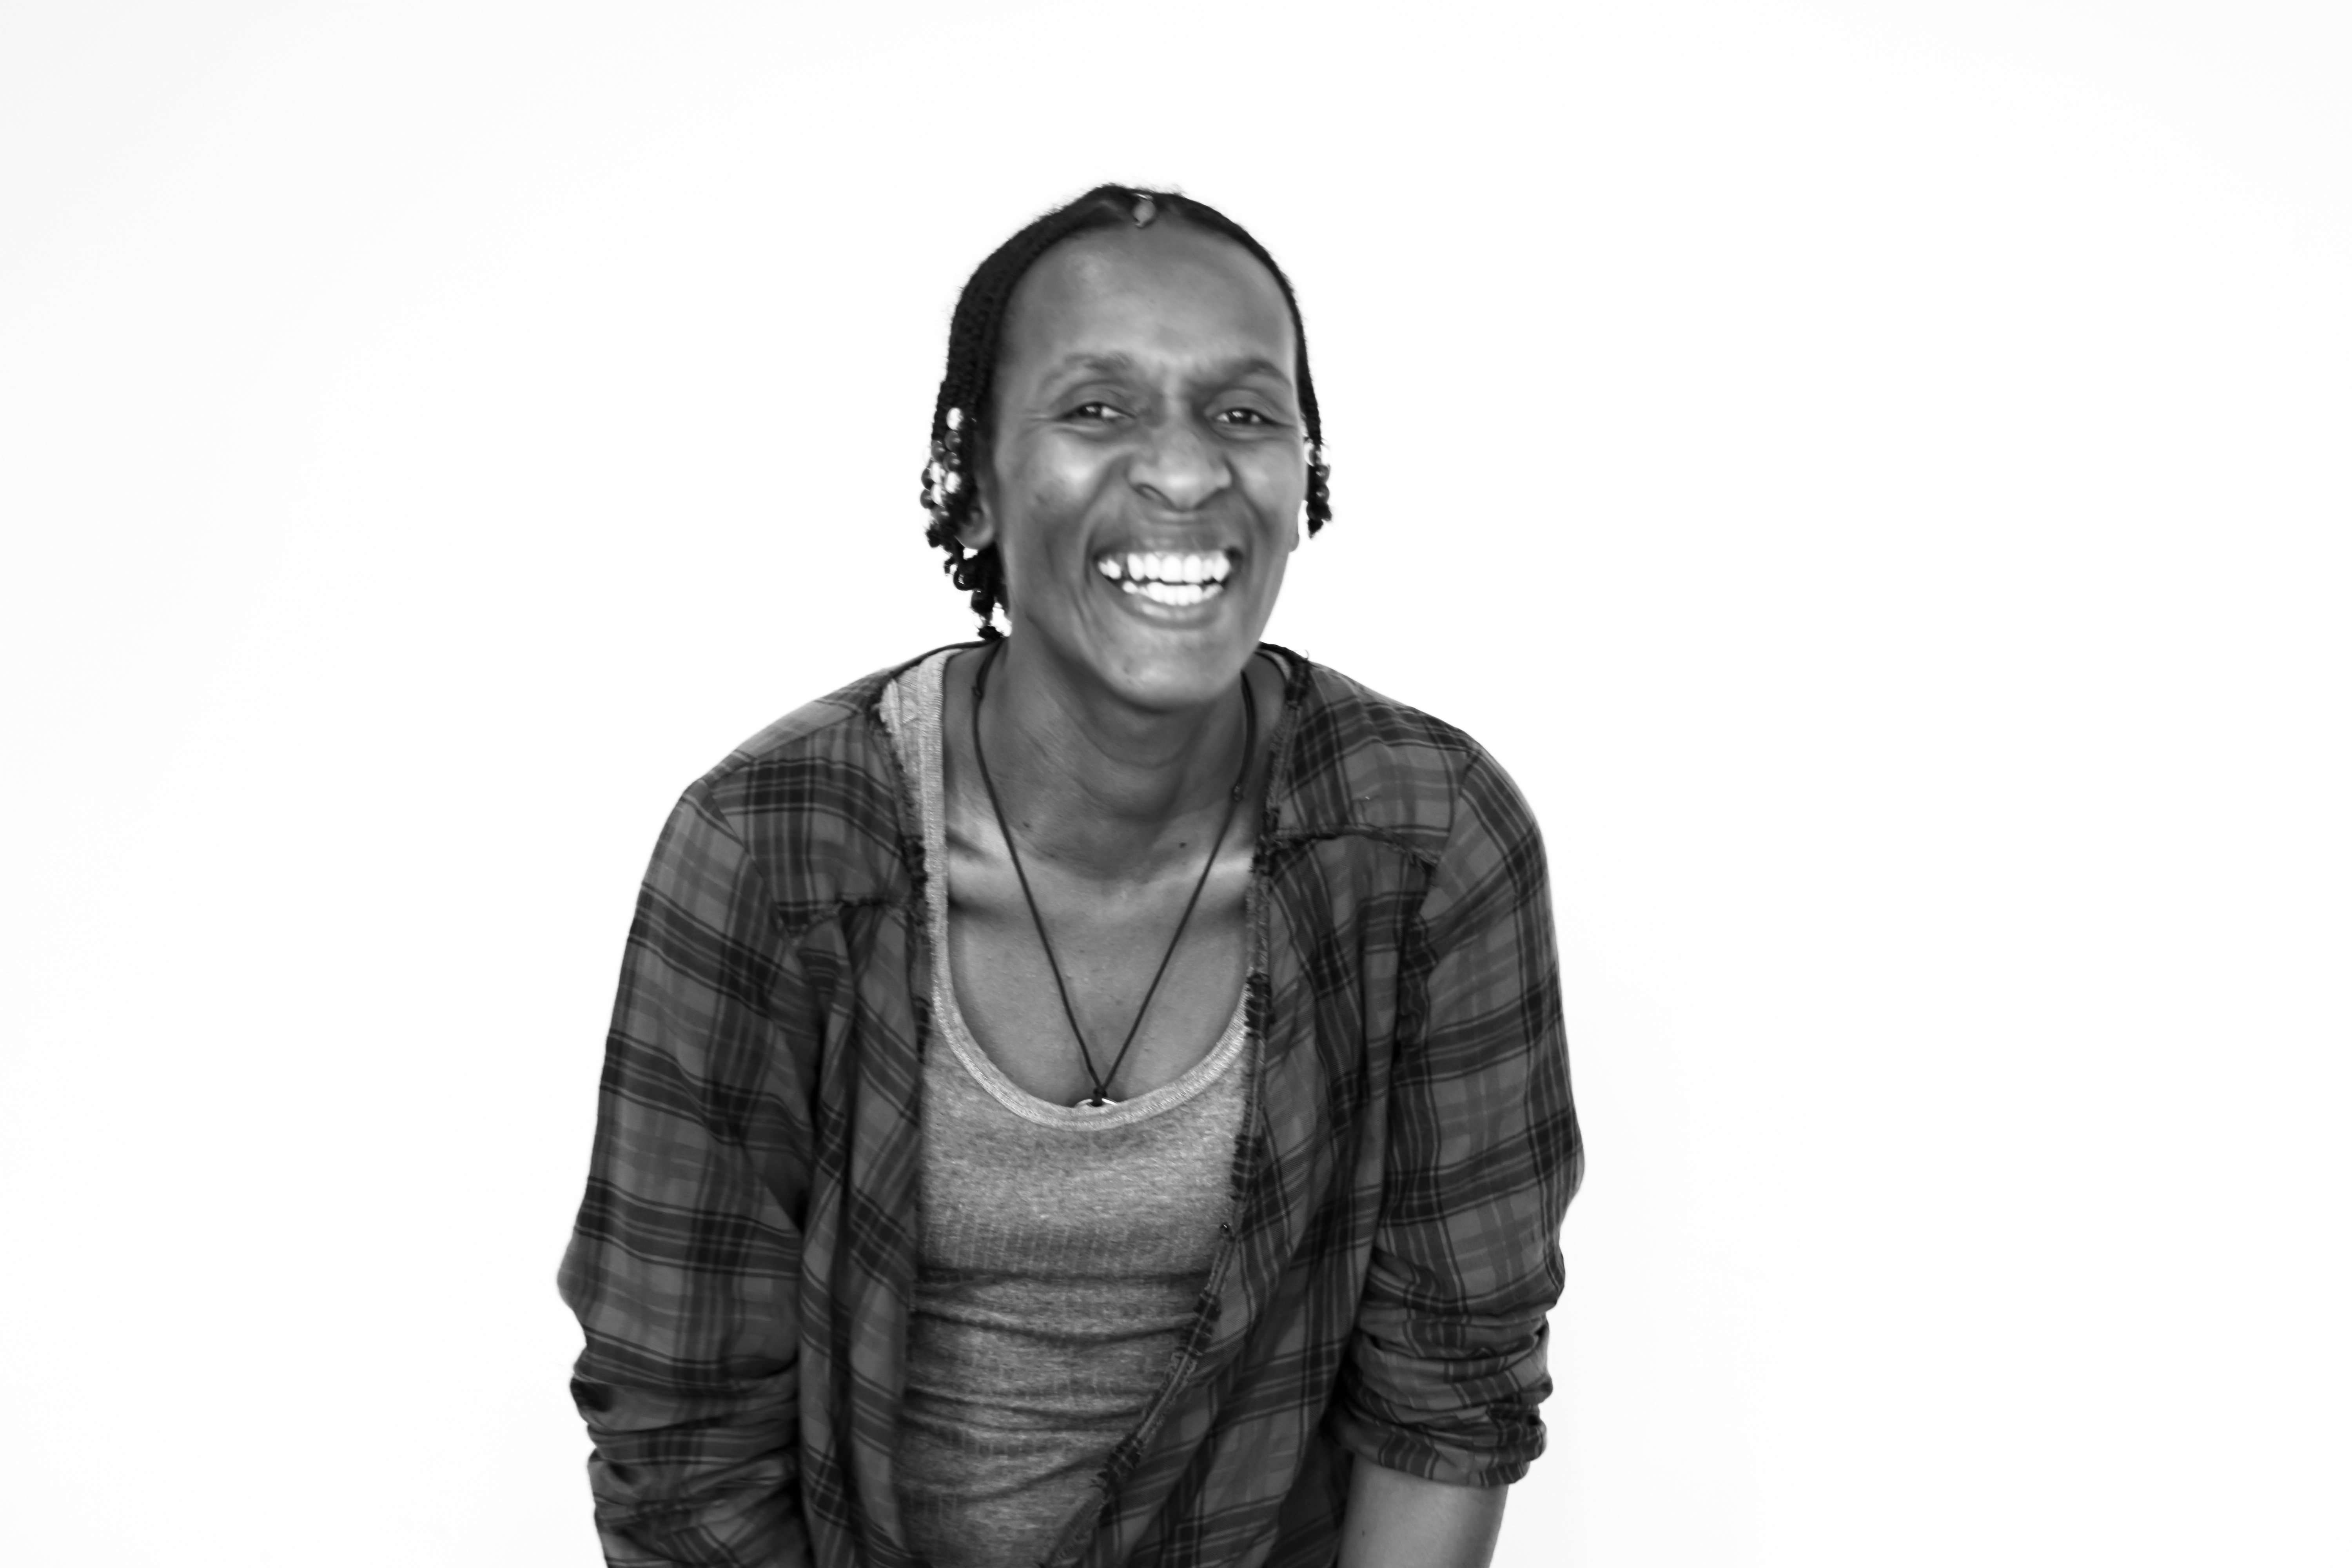 Photo of Ayanda, InsightShare associate from South Africa